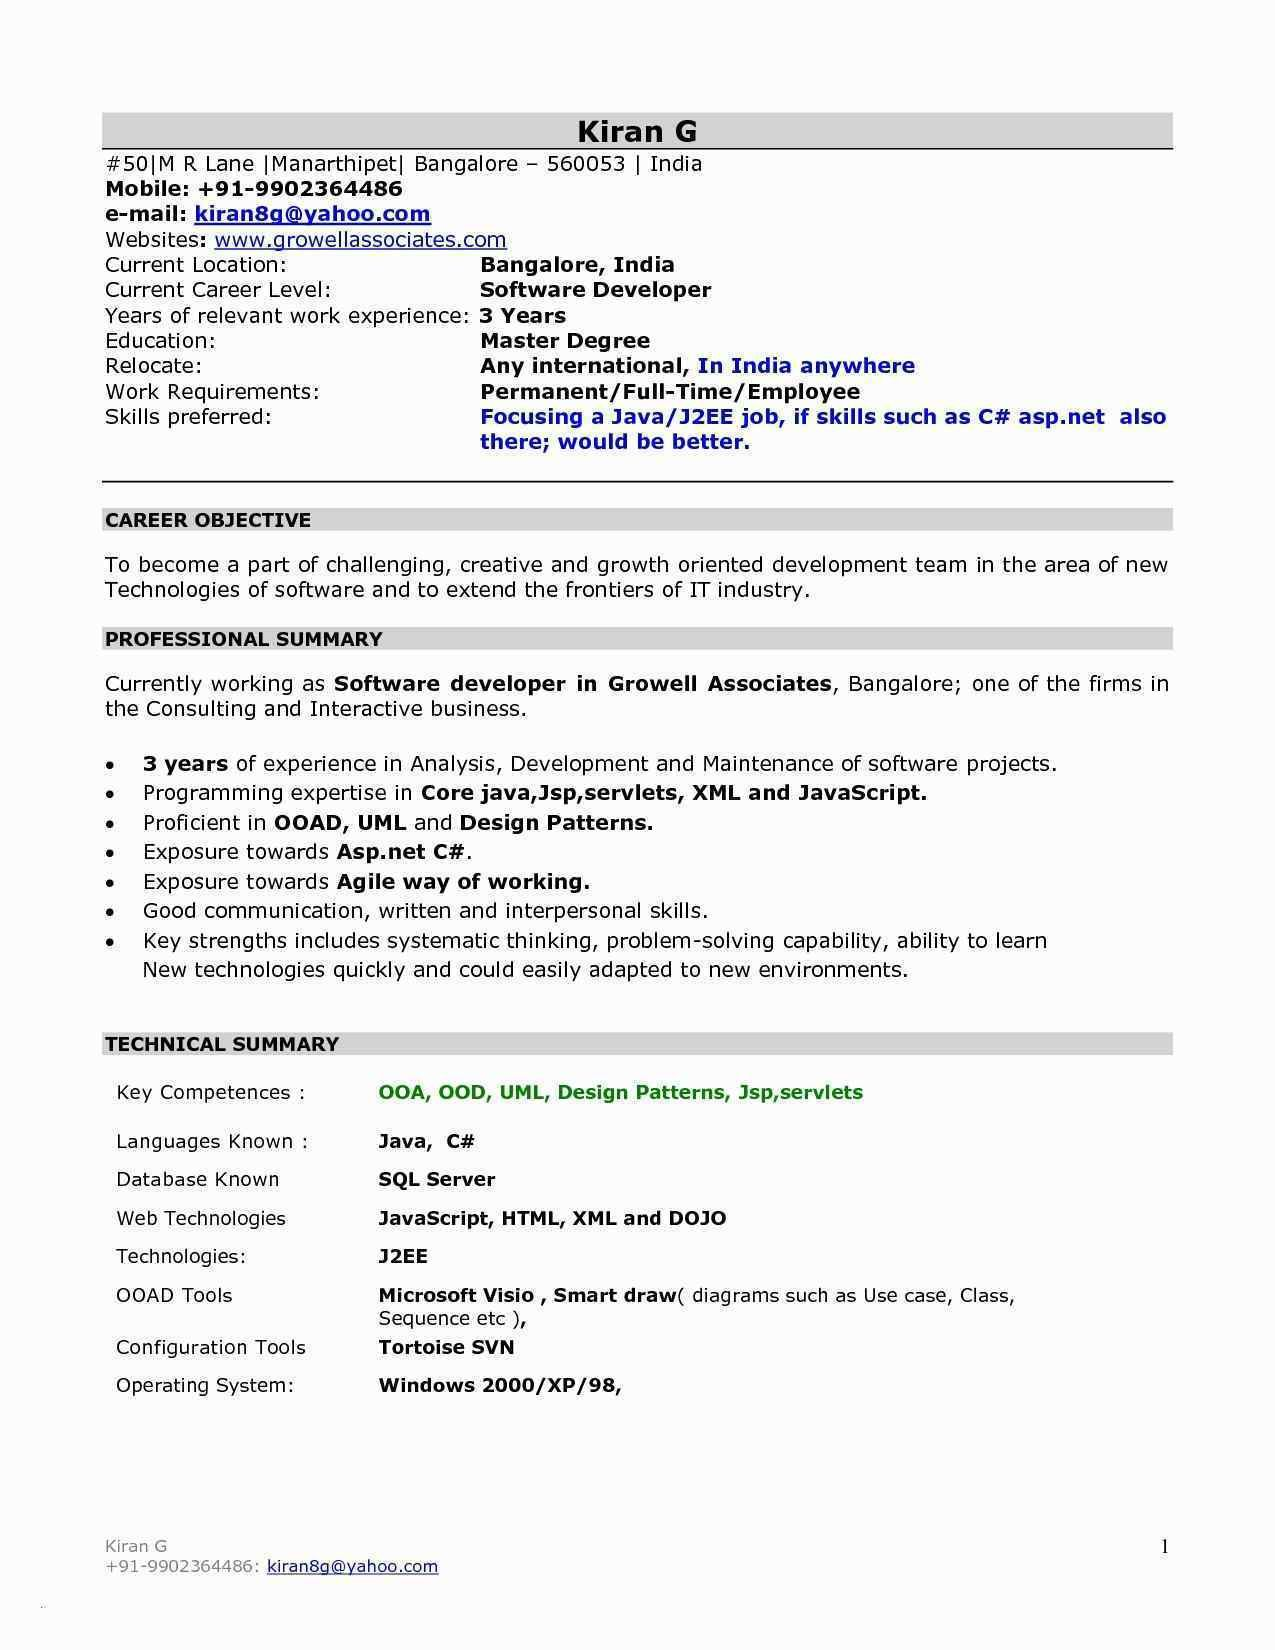 Experience Resume Format For Xml Developer Resume Format